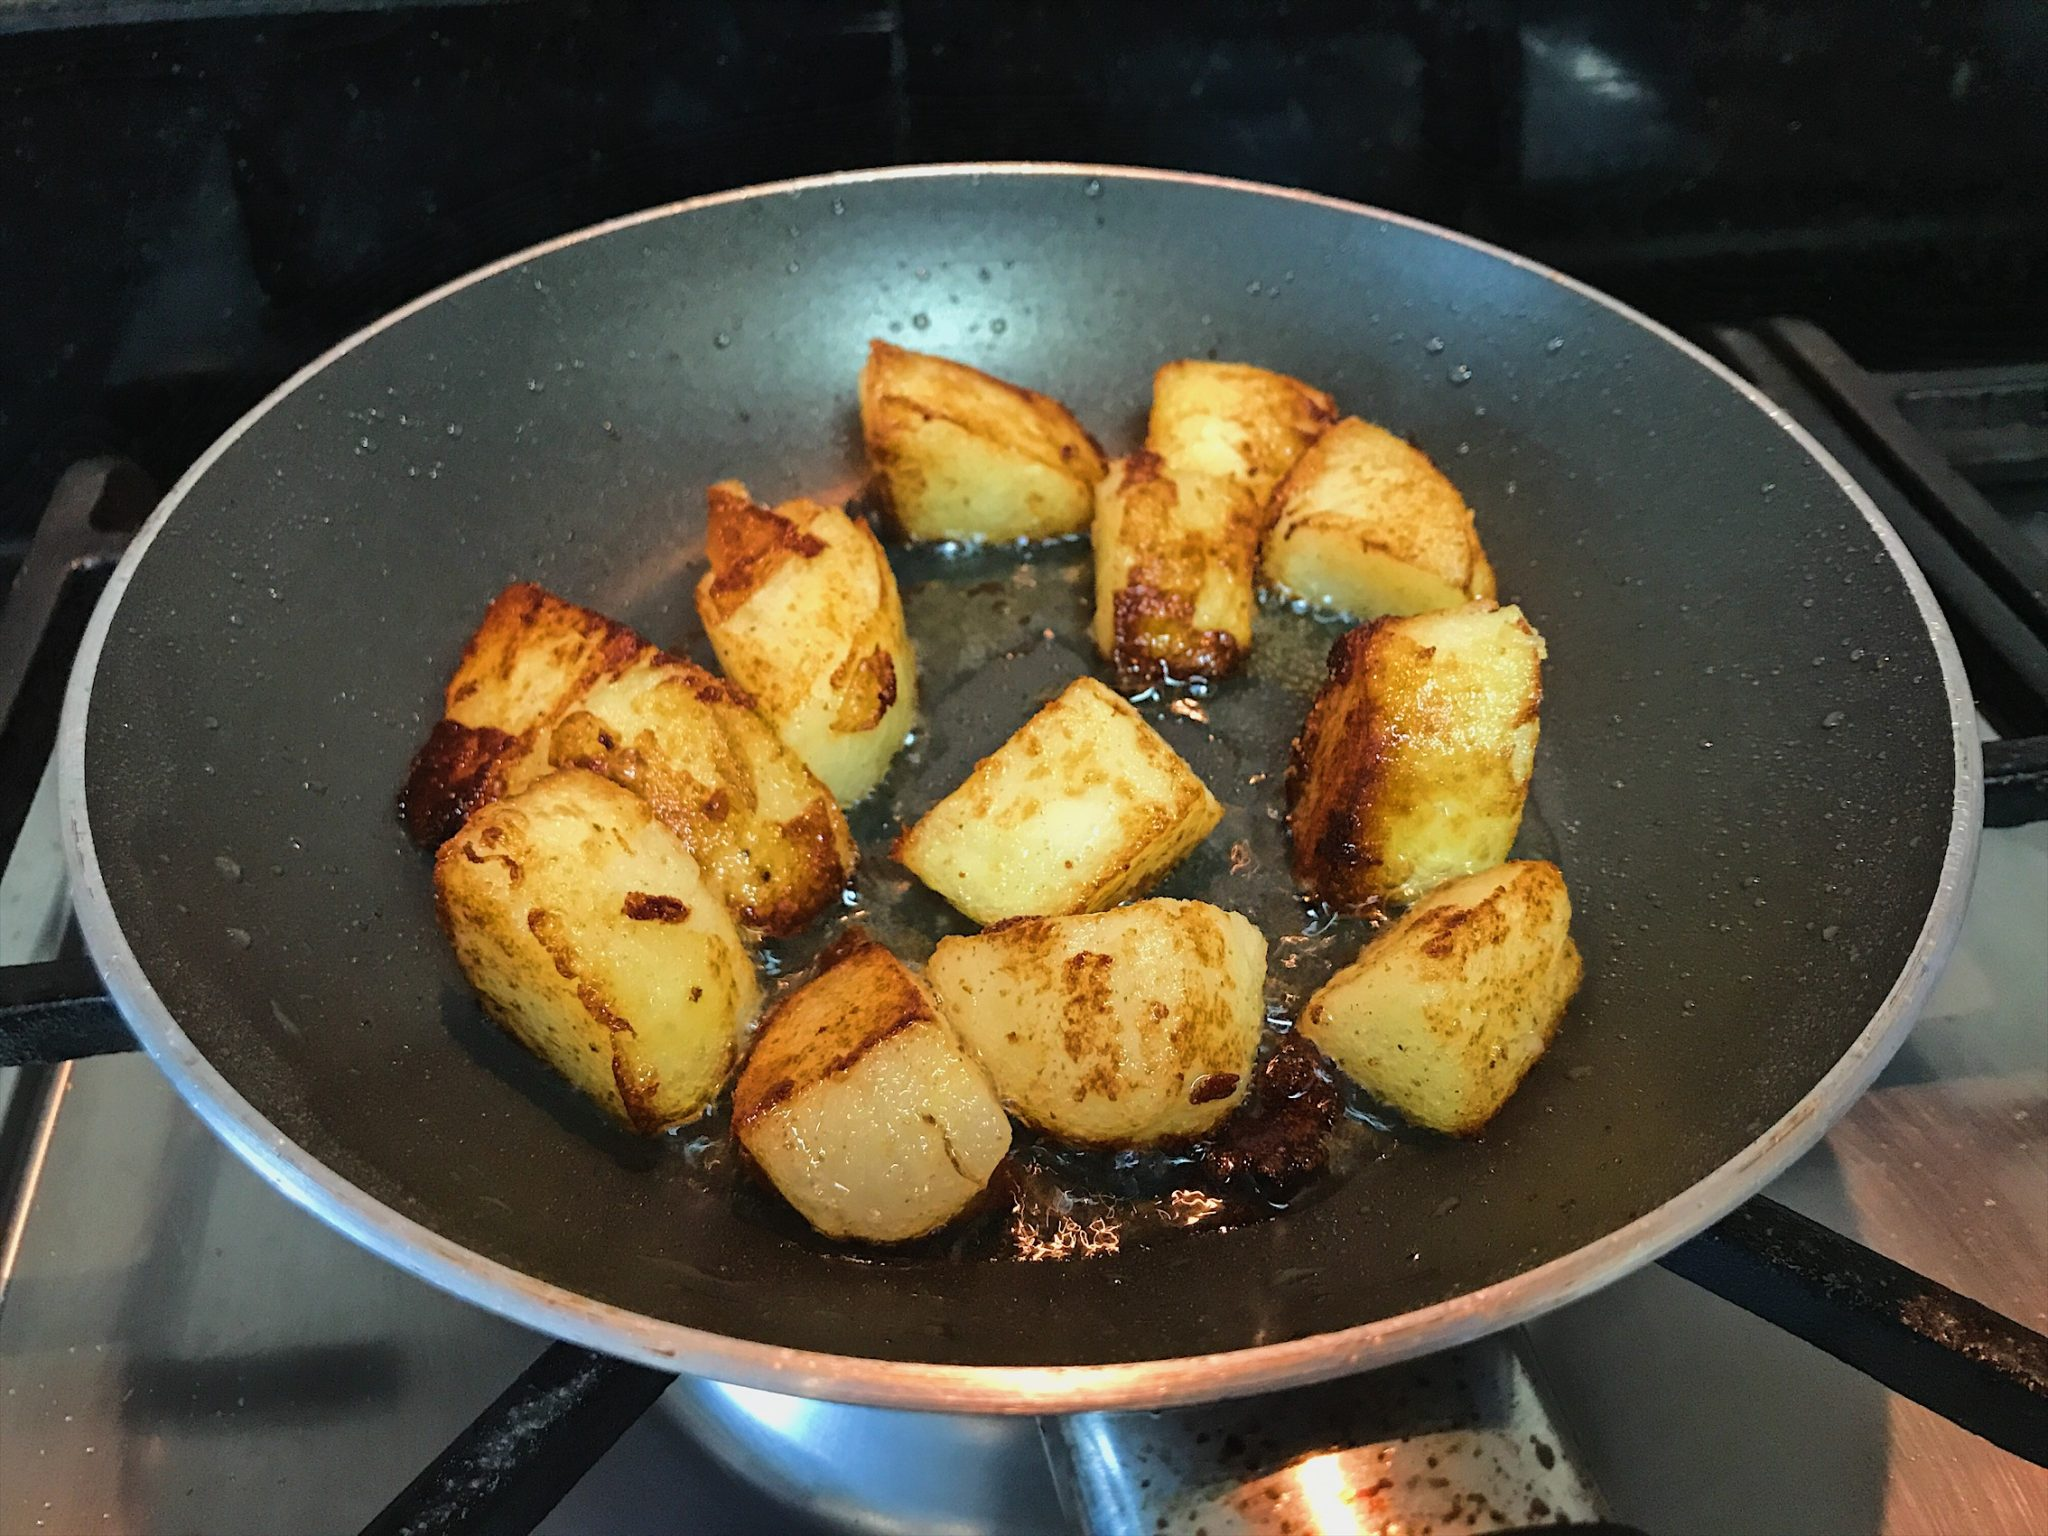 Frying boiled potatoes for Aloo Chaat